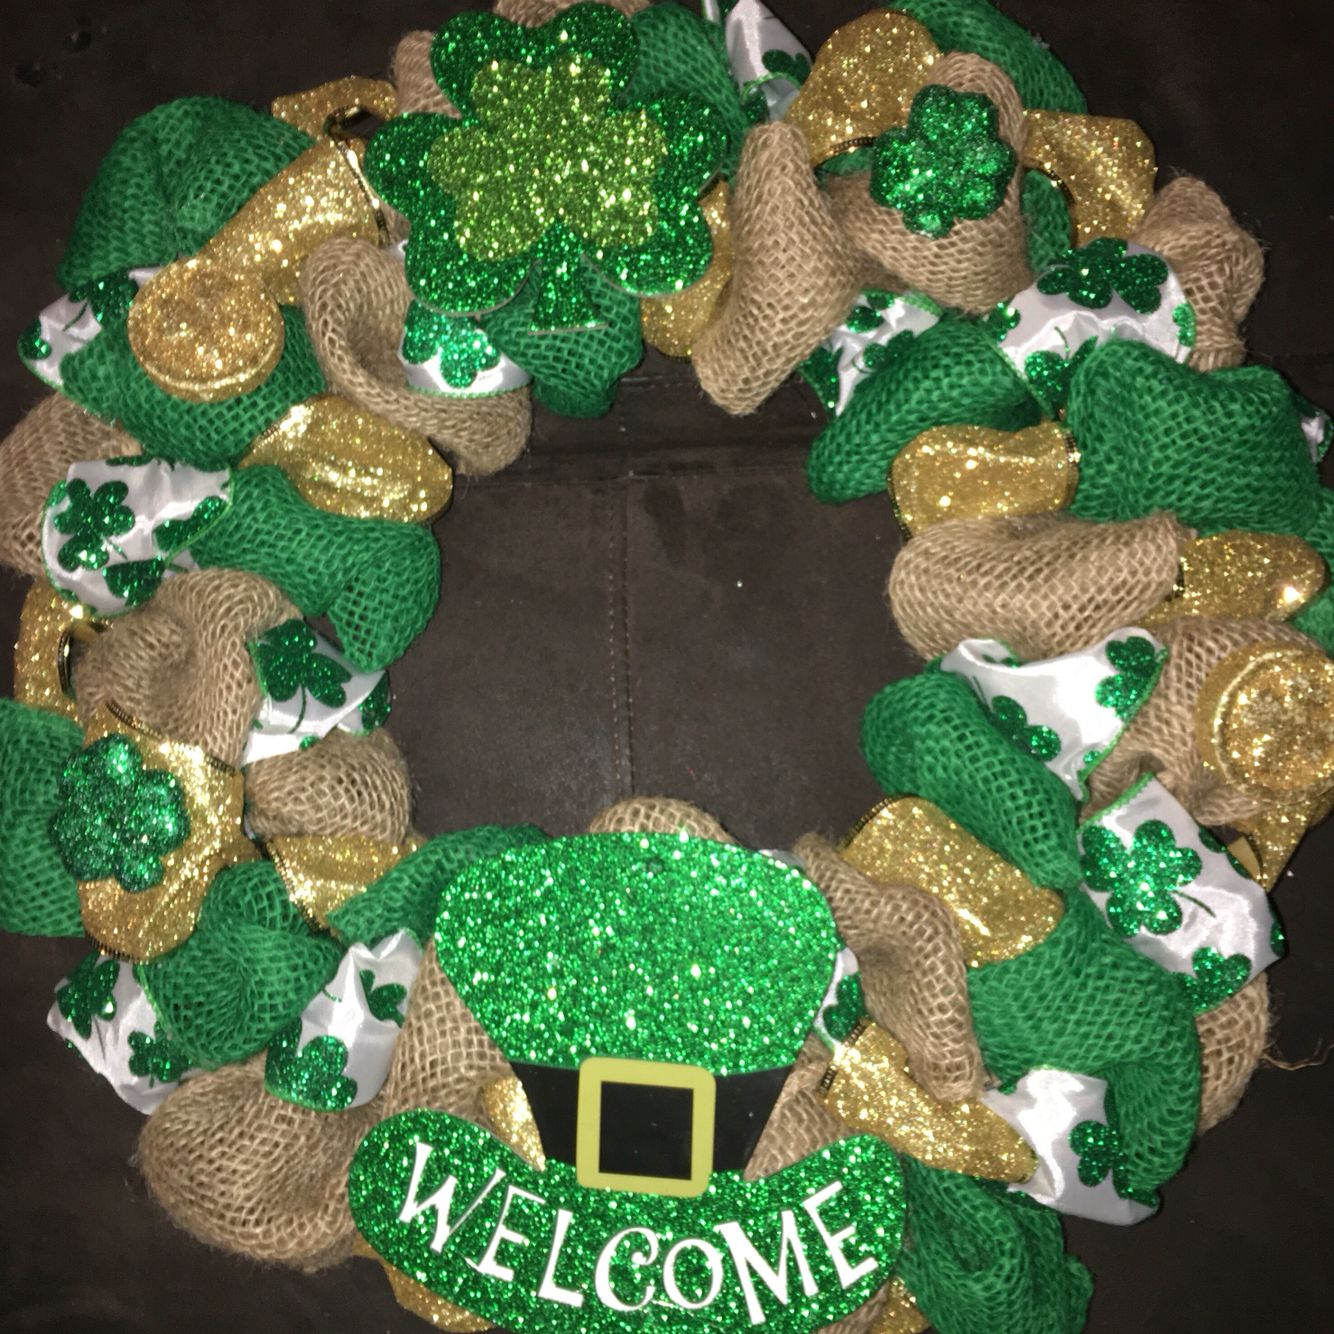 st patrick 39 s day wreath holiday wreaths for sale by me. Black Bedroom Furniture Sets. Home Design Ideas